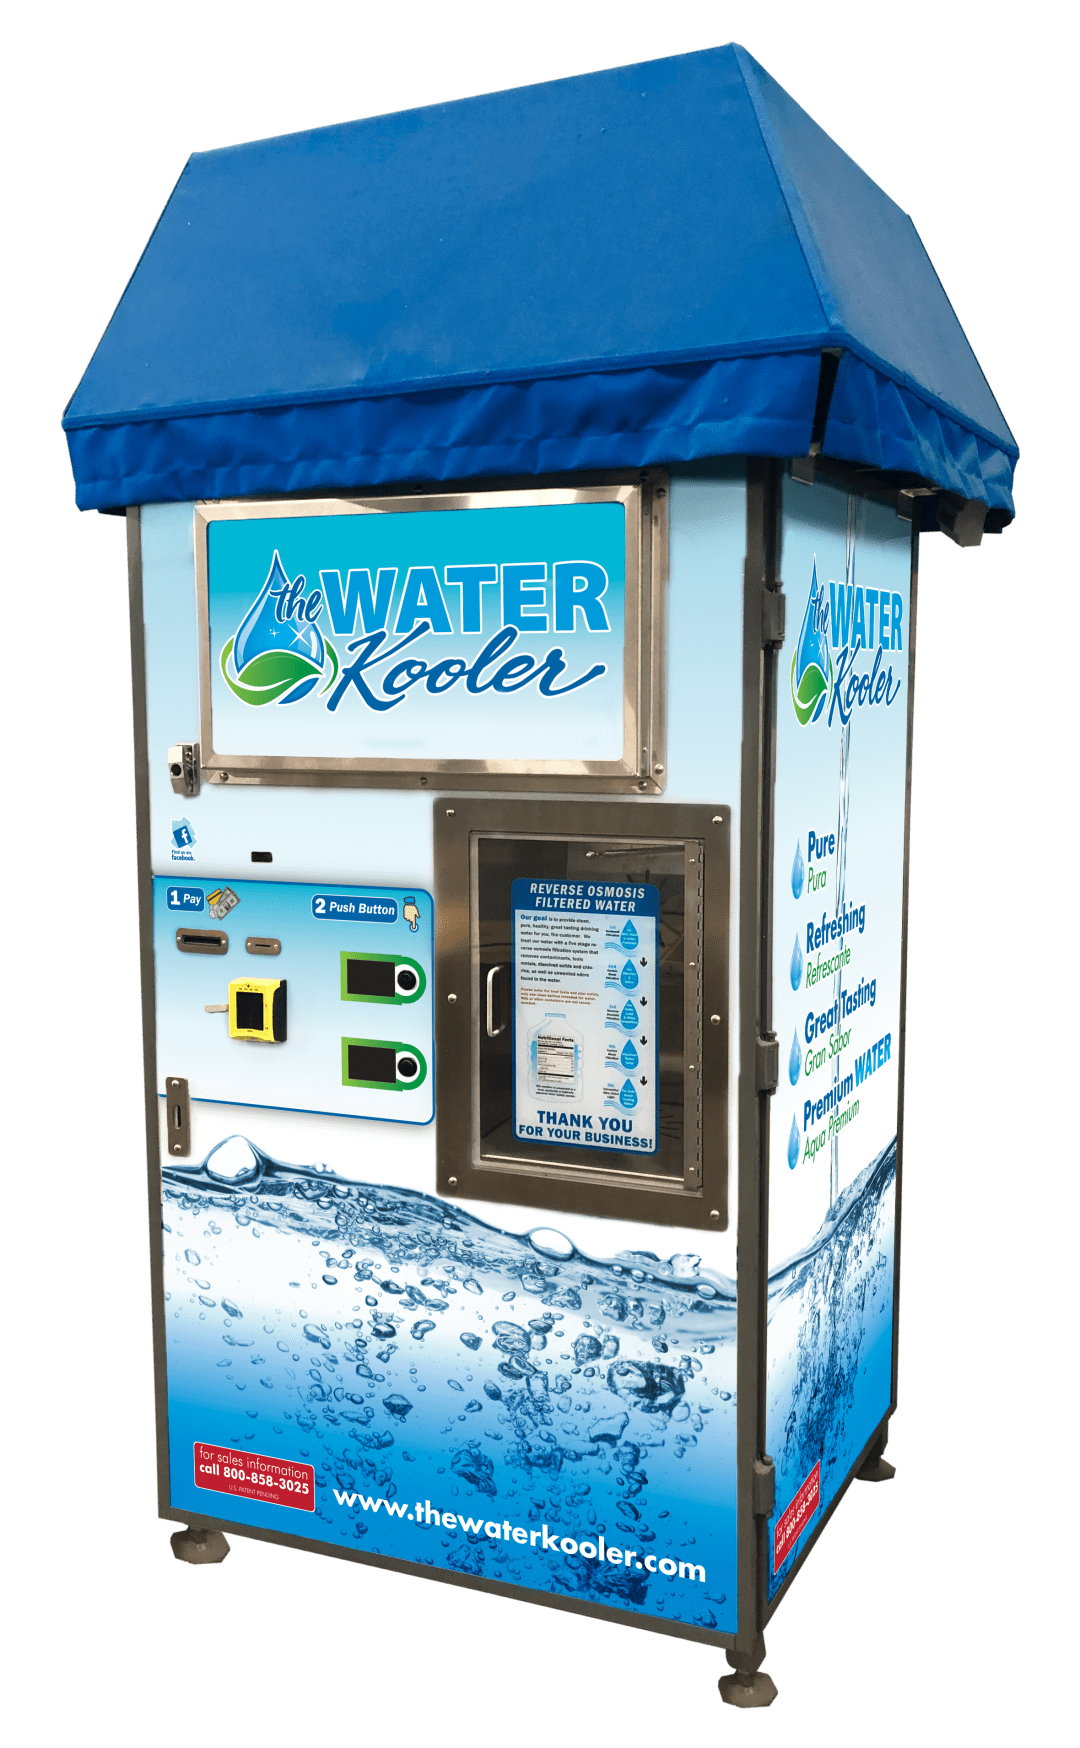 Water Kooler water vending machine